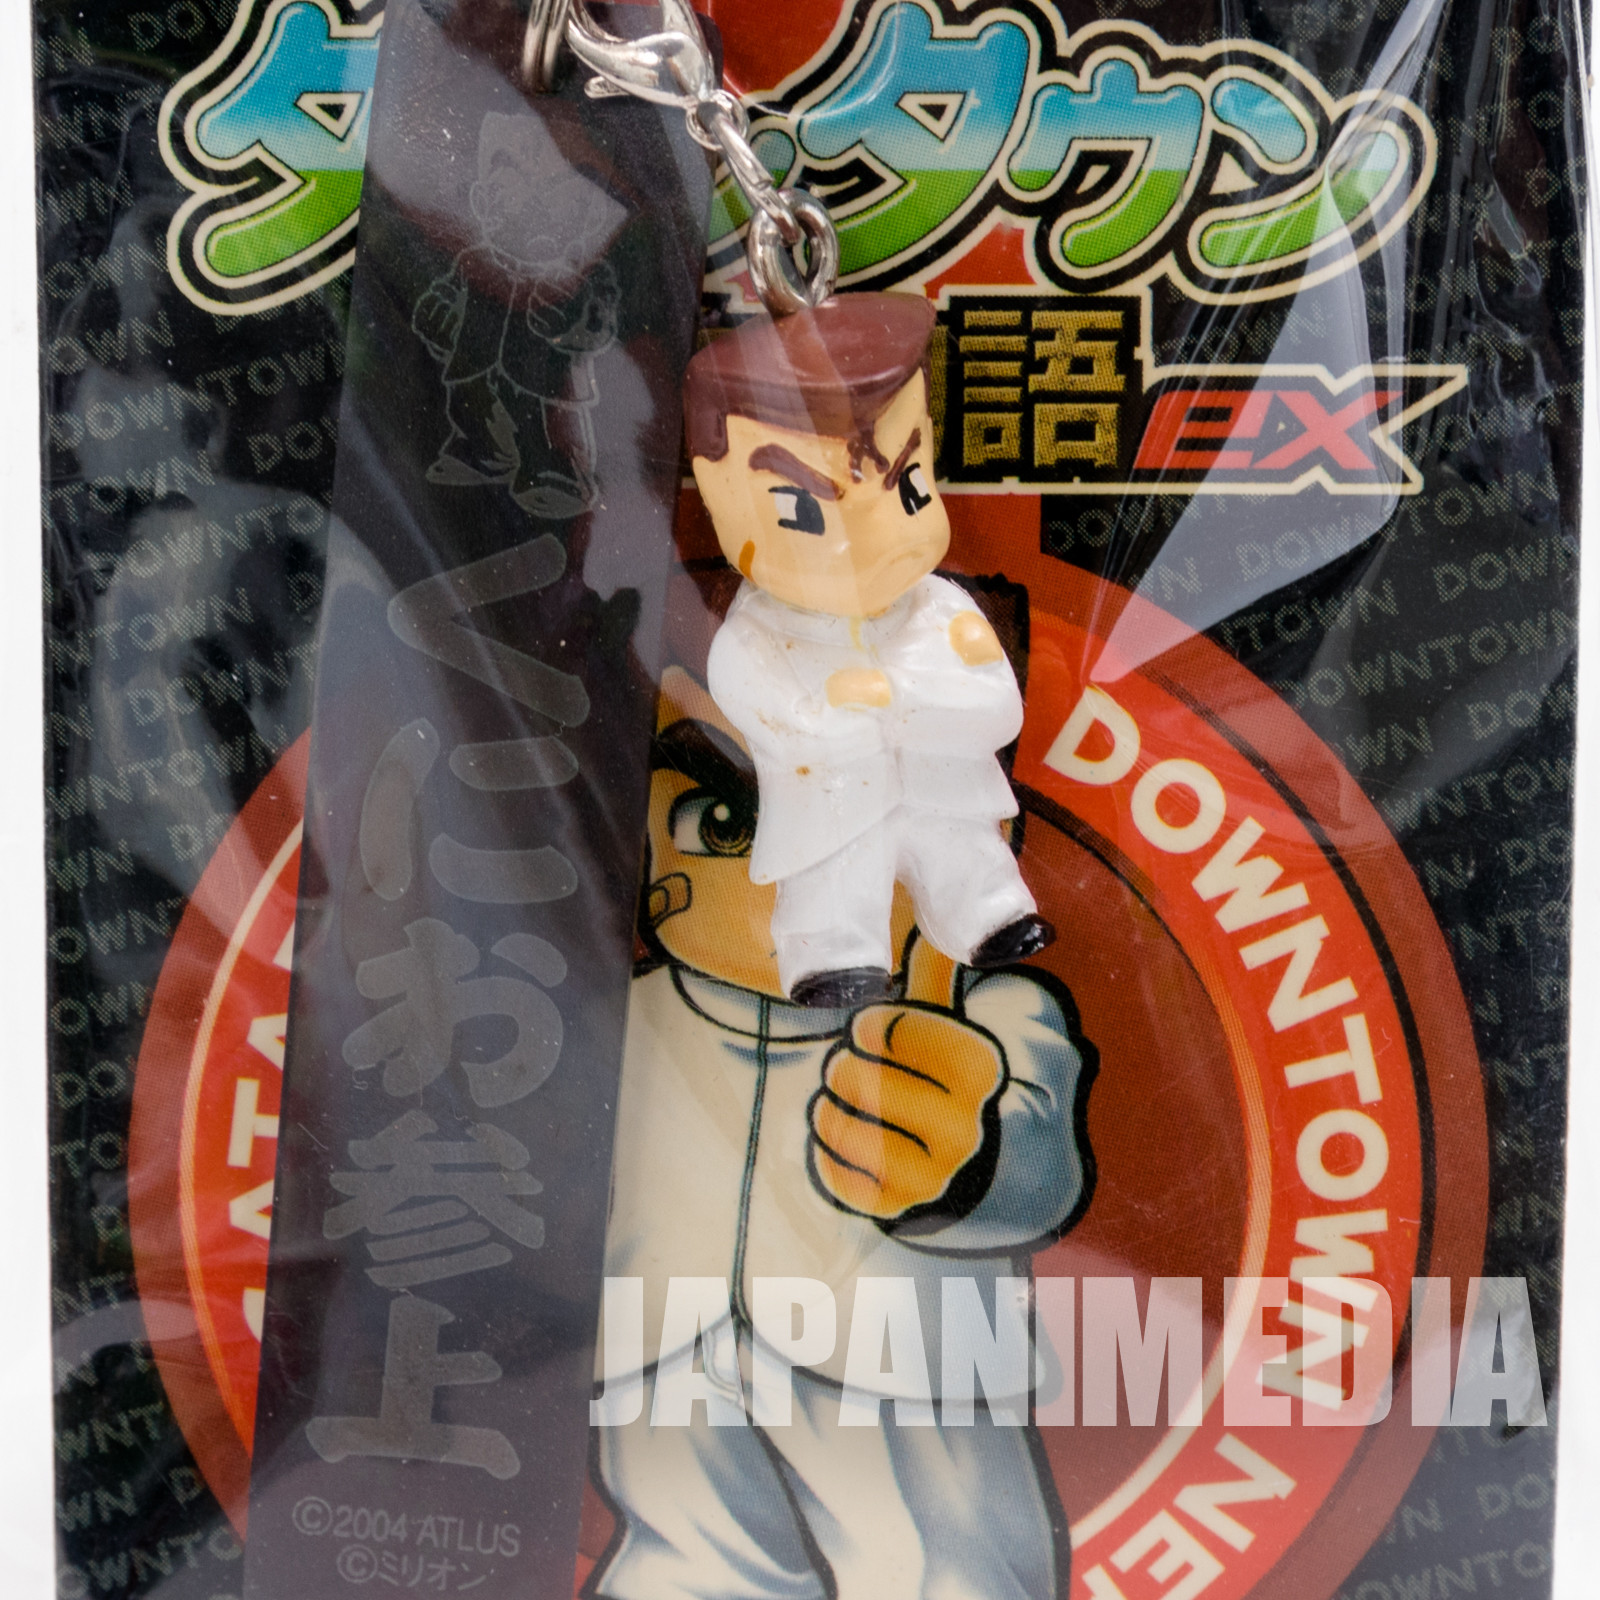 River City Ransom EX Kunio-kun Mascot Figure Strap JAPAN GAME